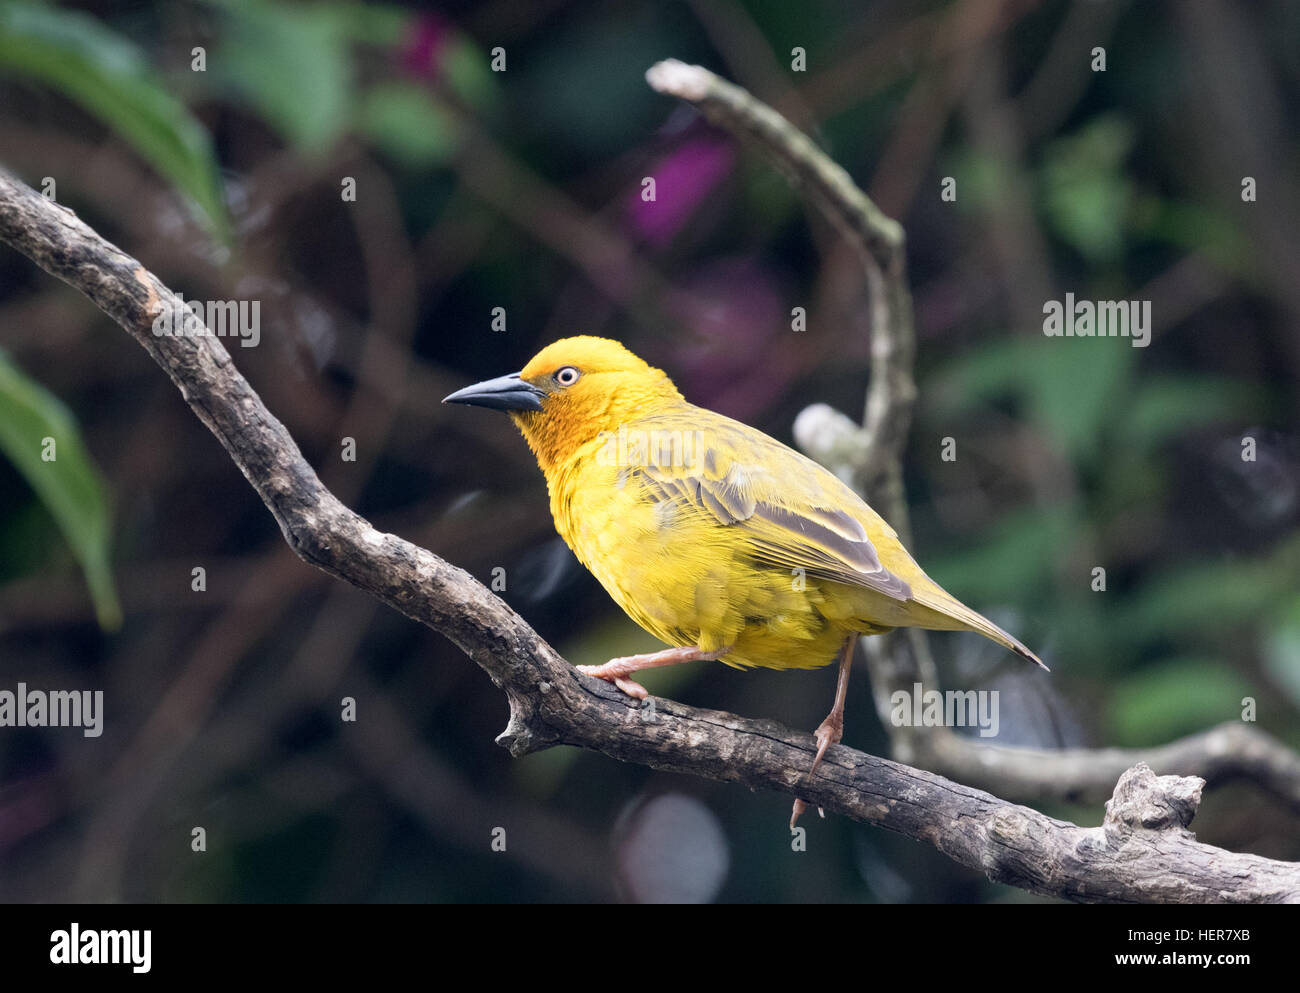 Golden Palm Weaver bird, adult, side view, South Africa - Stock Image